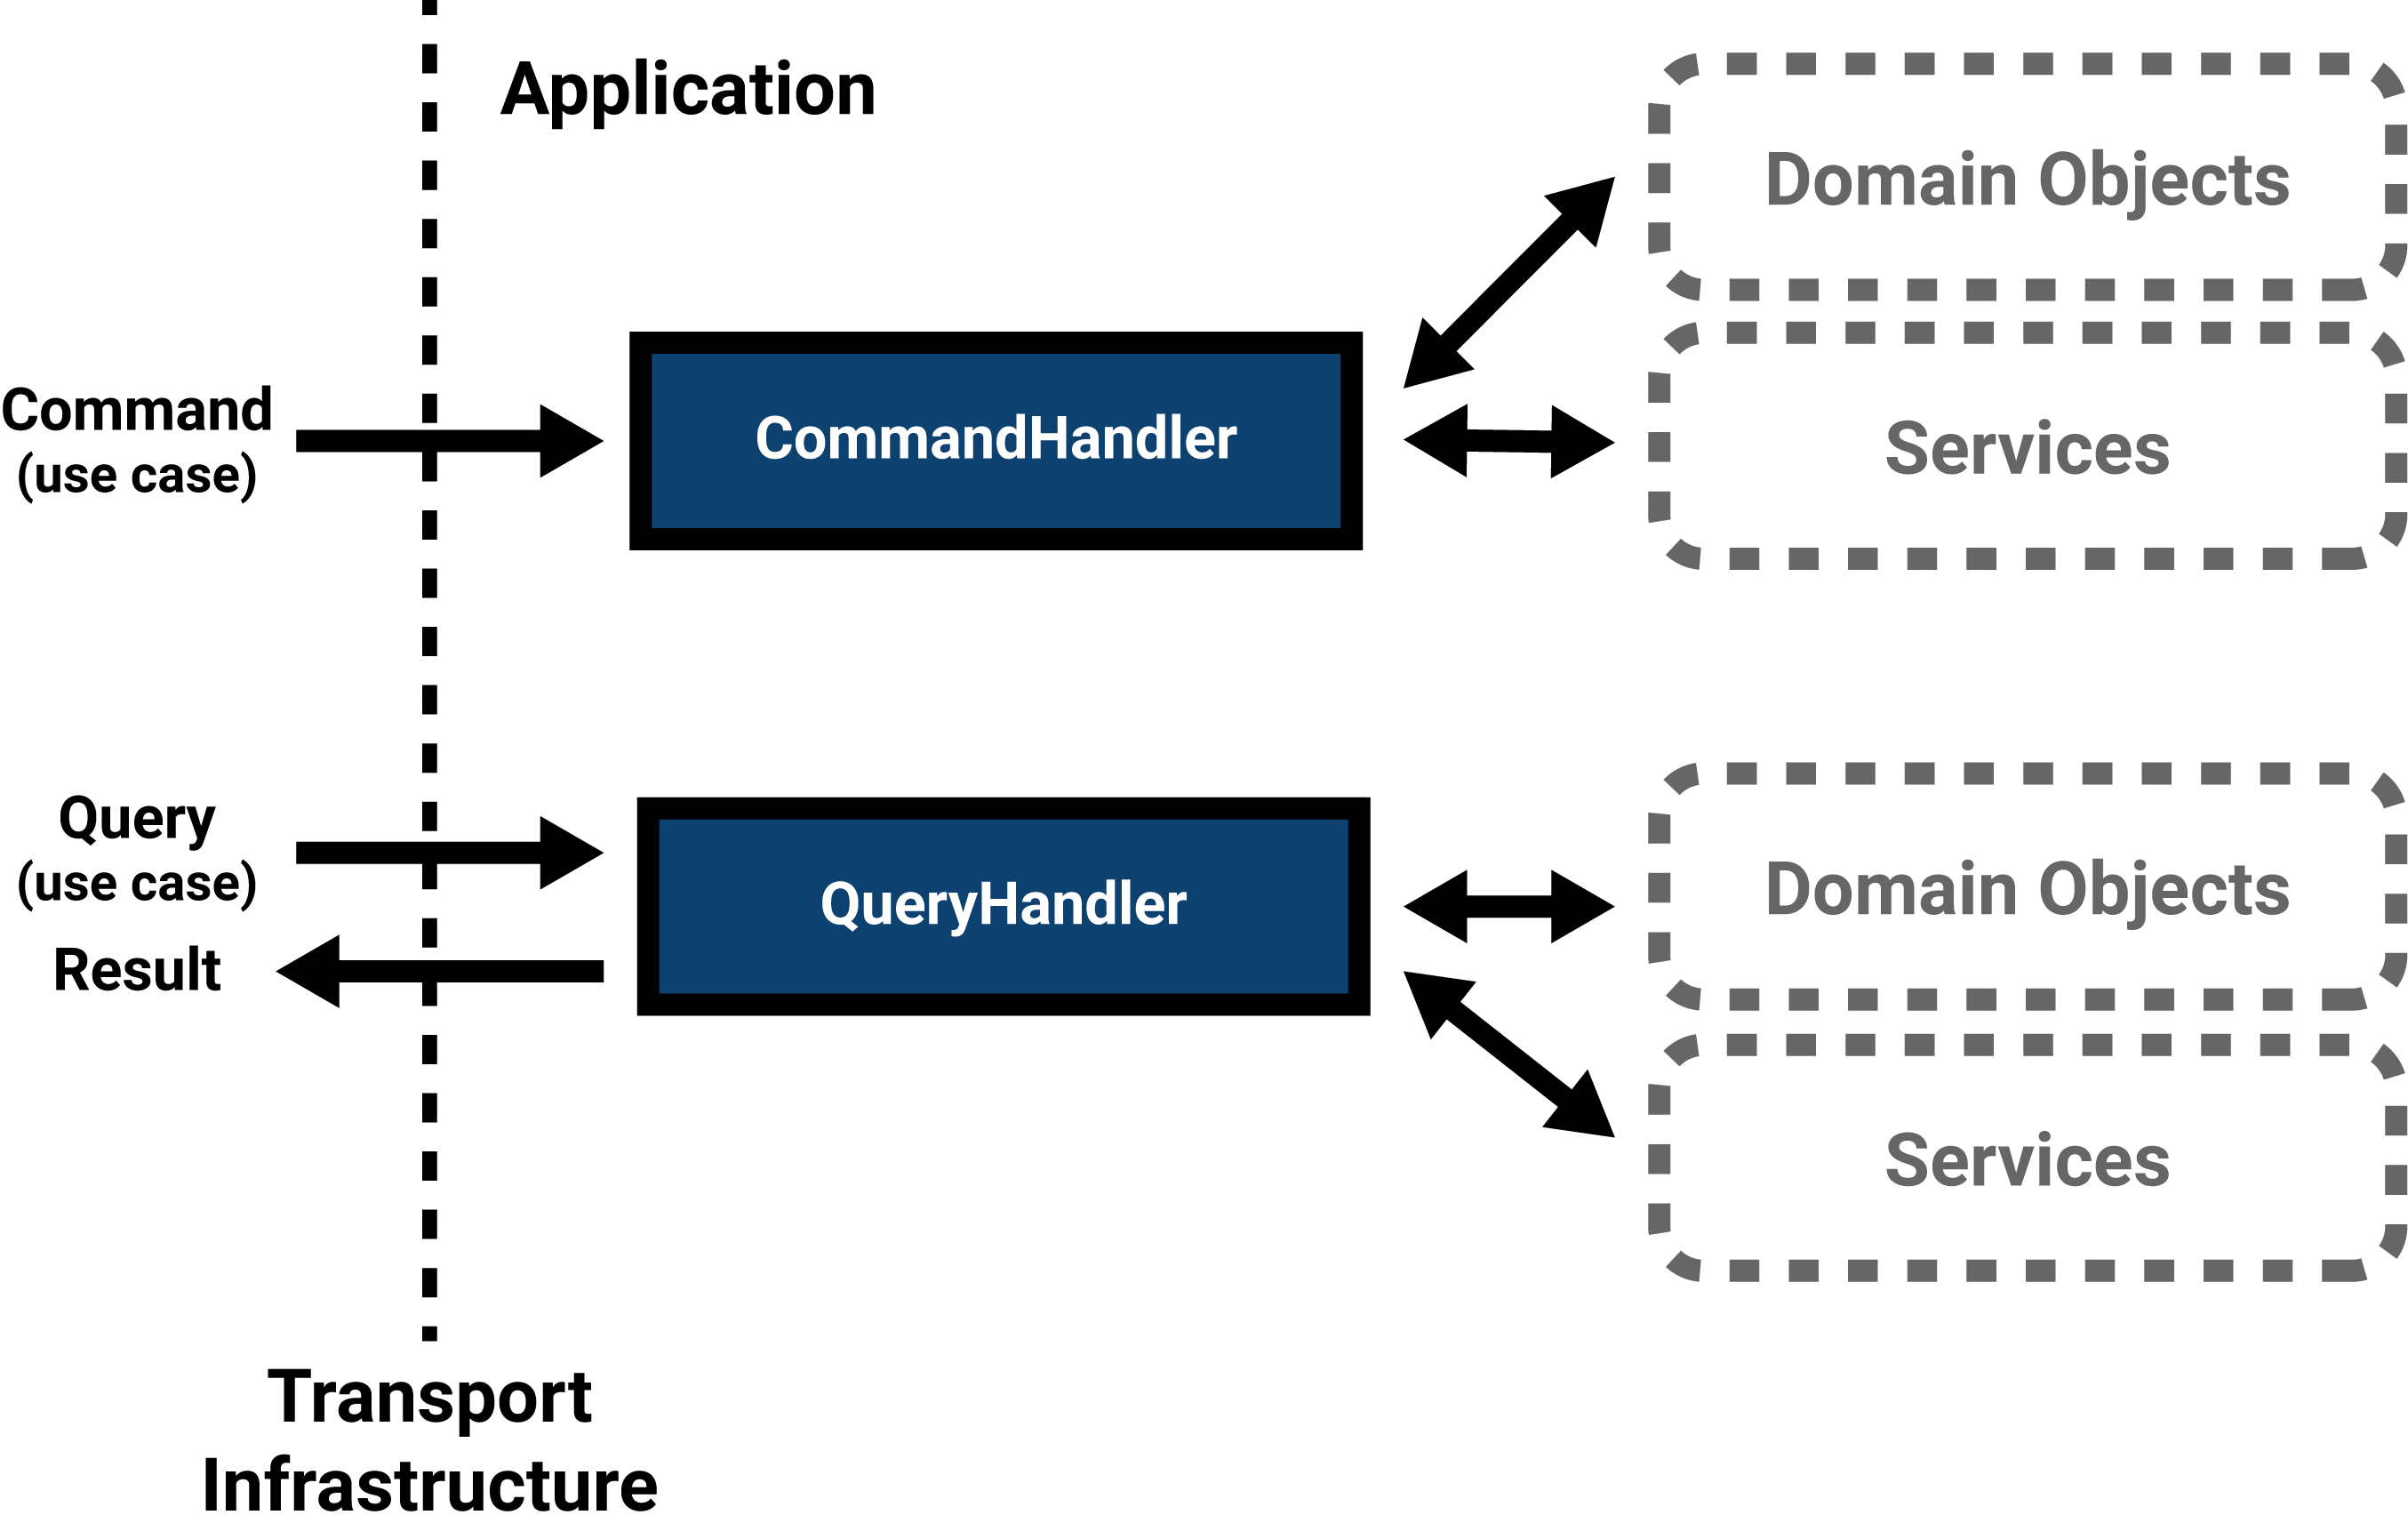 Handlers handle use cases and orchestrate domain objects and infrastructure interaction